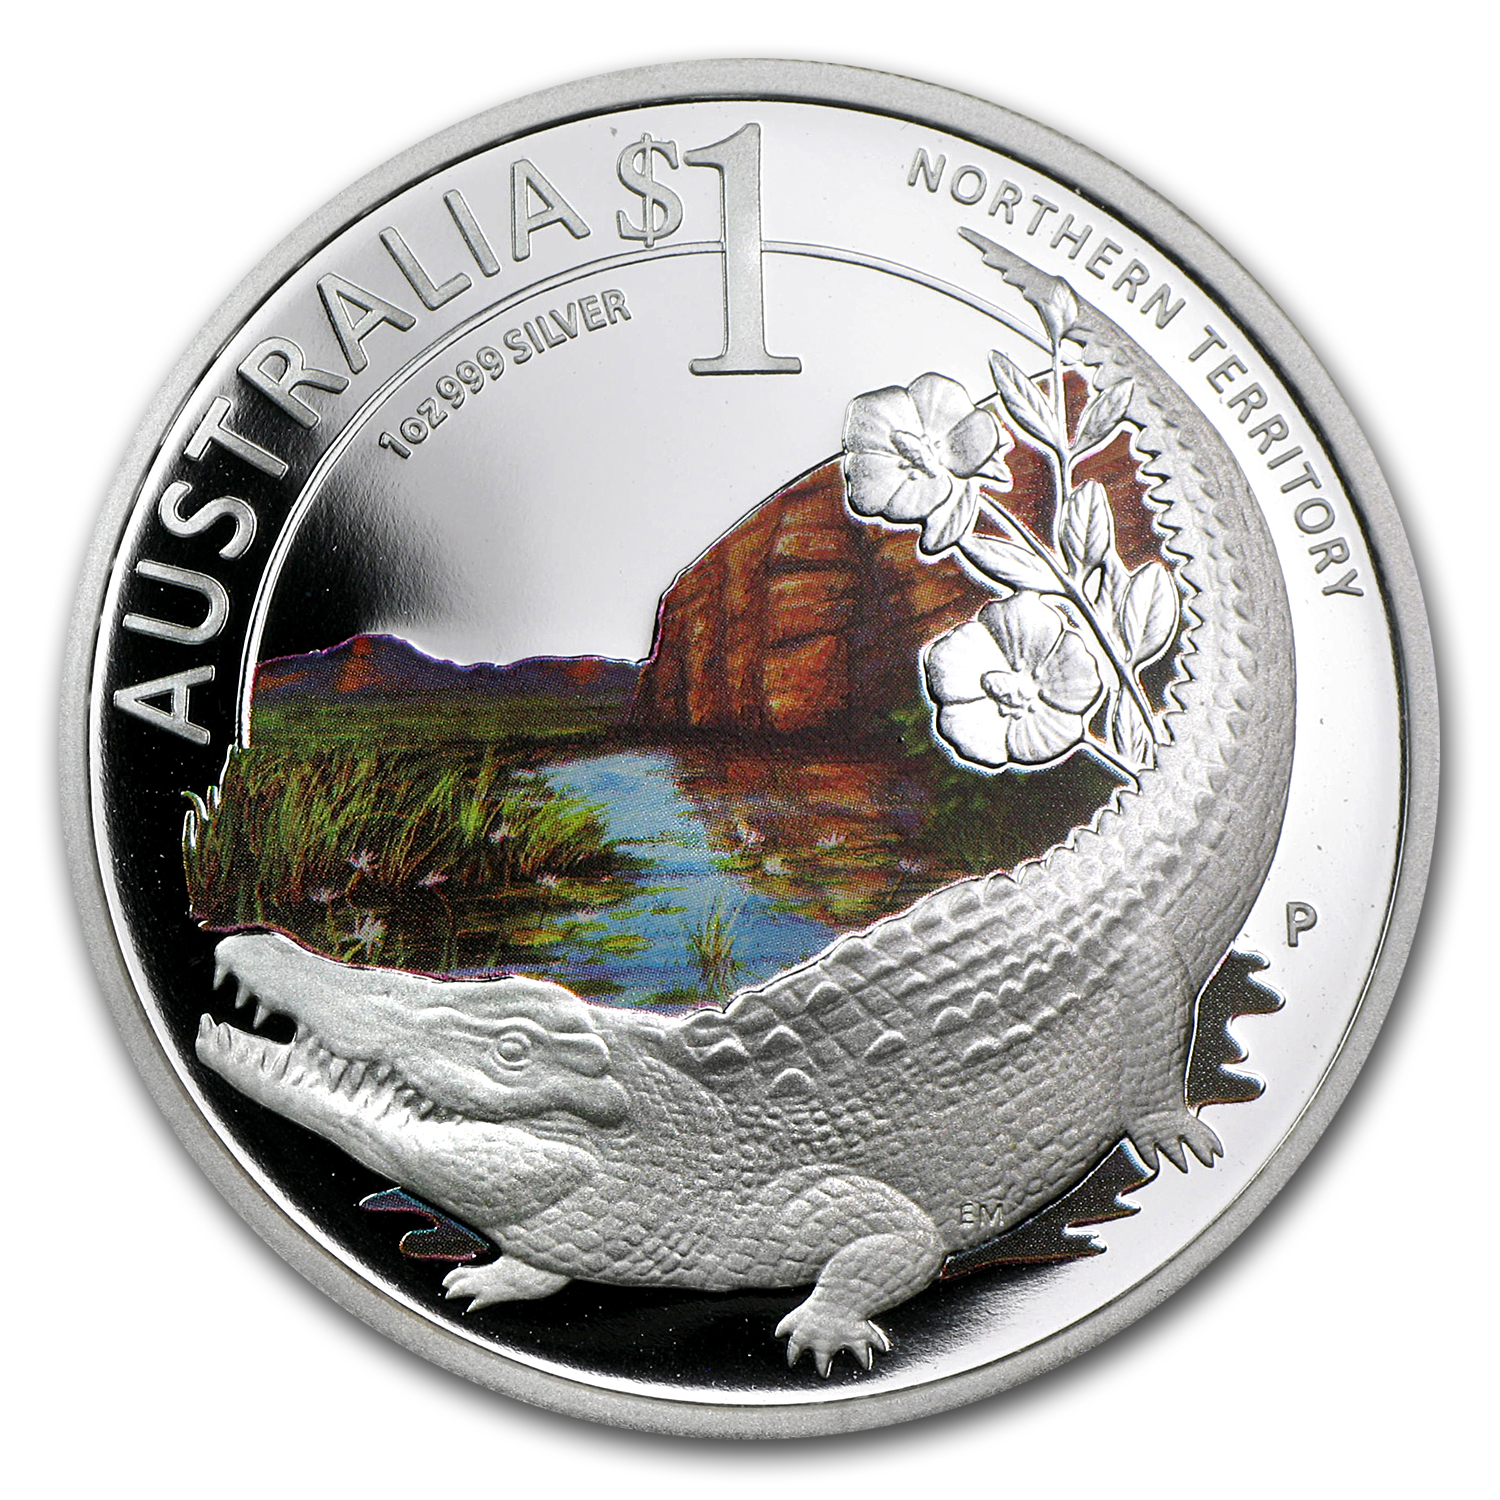 2010 Australia 1 oz Silver Crocodile Proof (ANA, w/Box & COA)